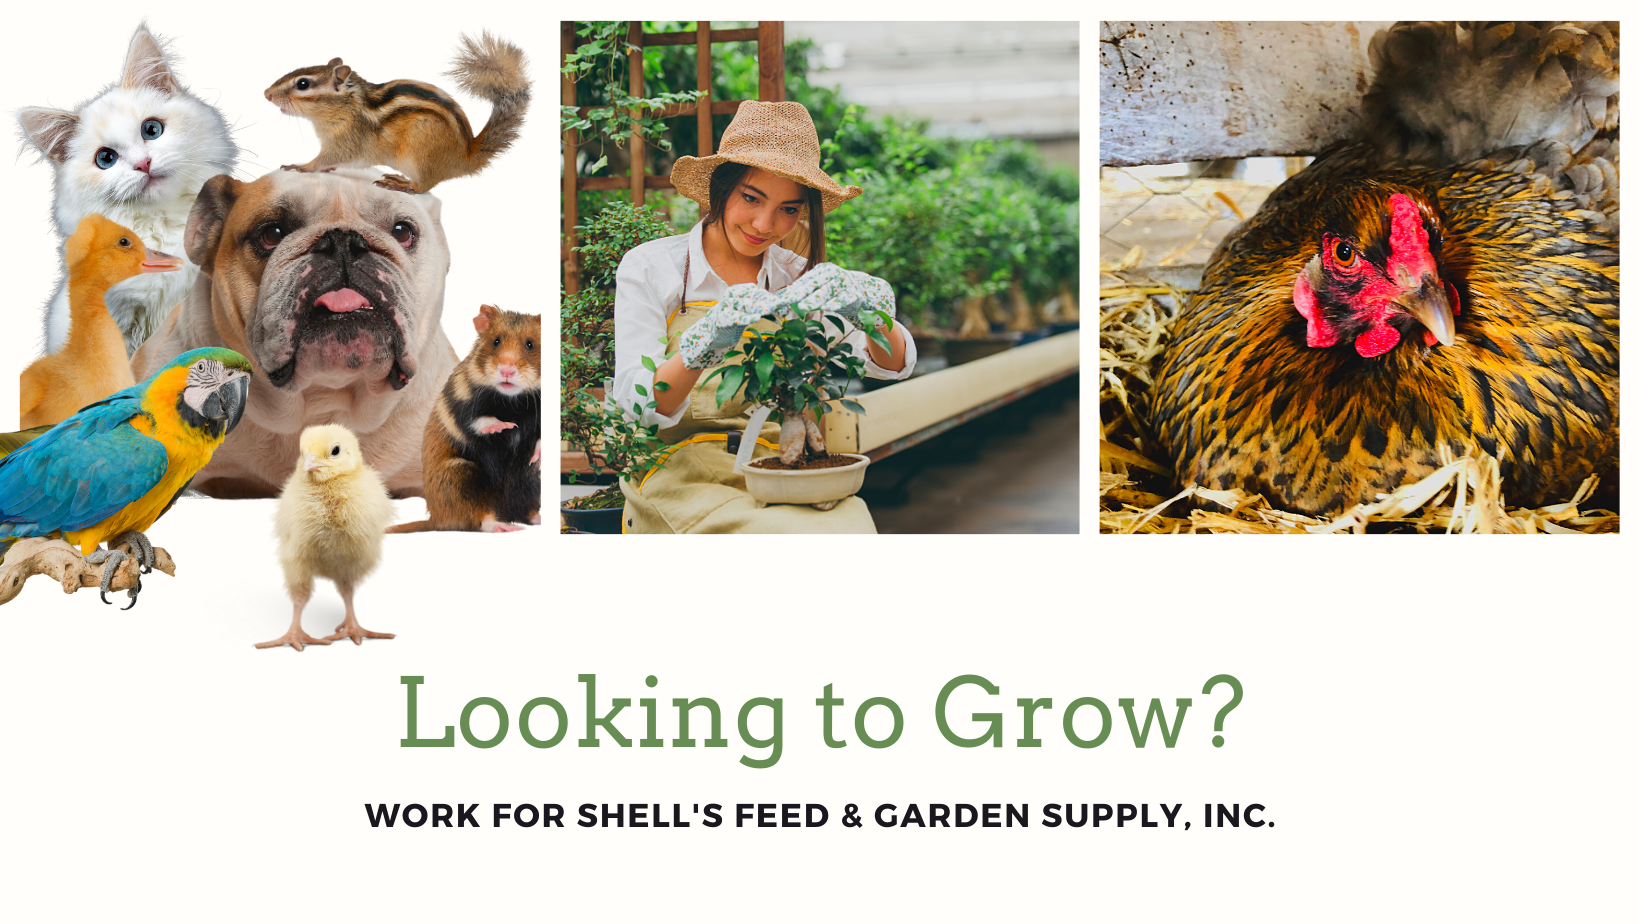 Looking To Grow? Work for Shell's Feed & Garden Supply Inc